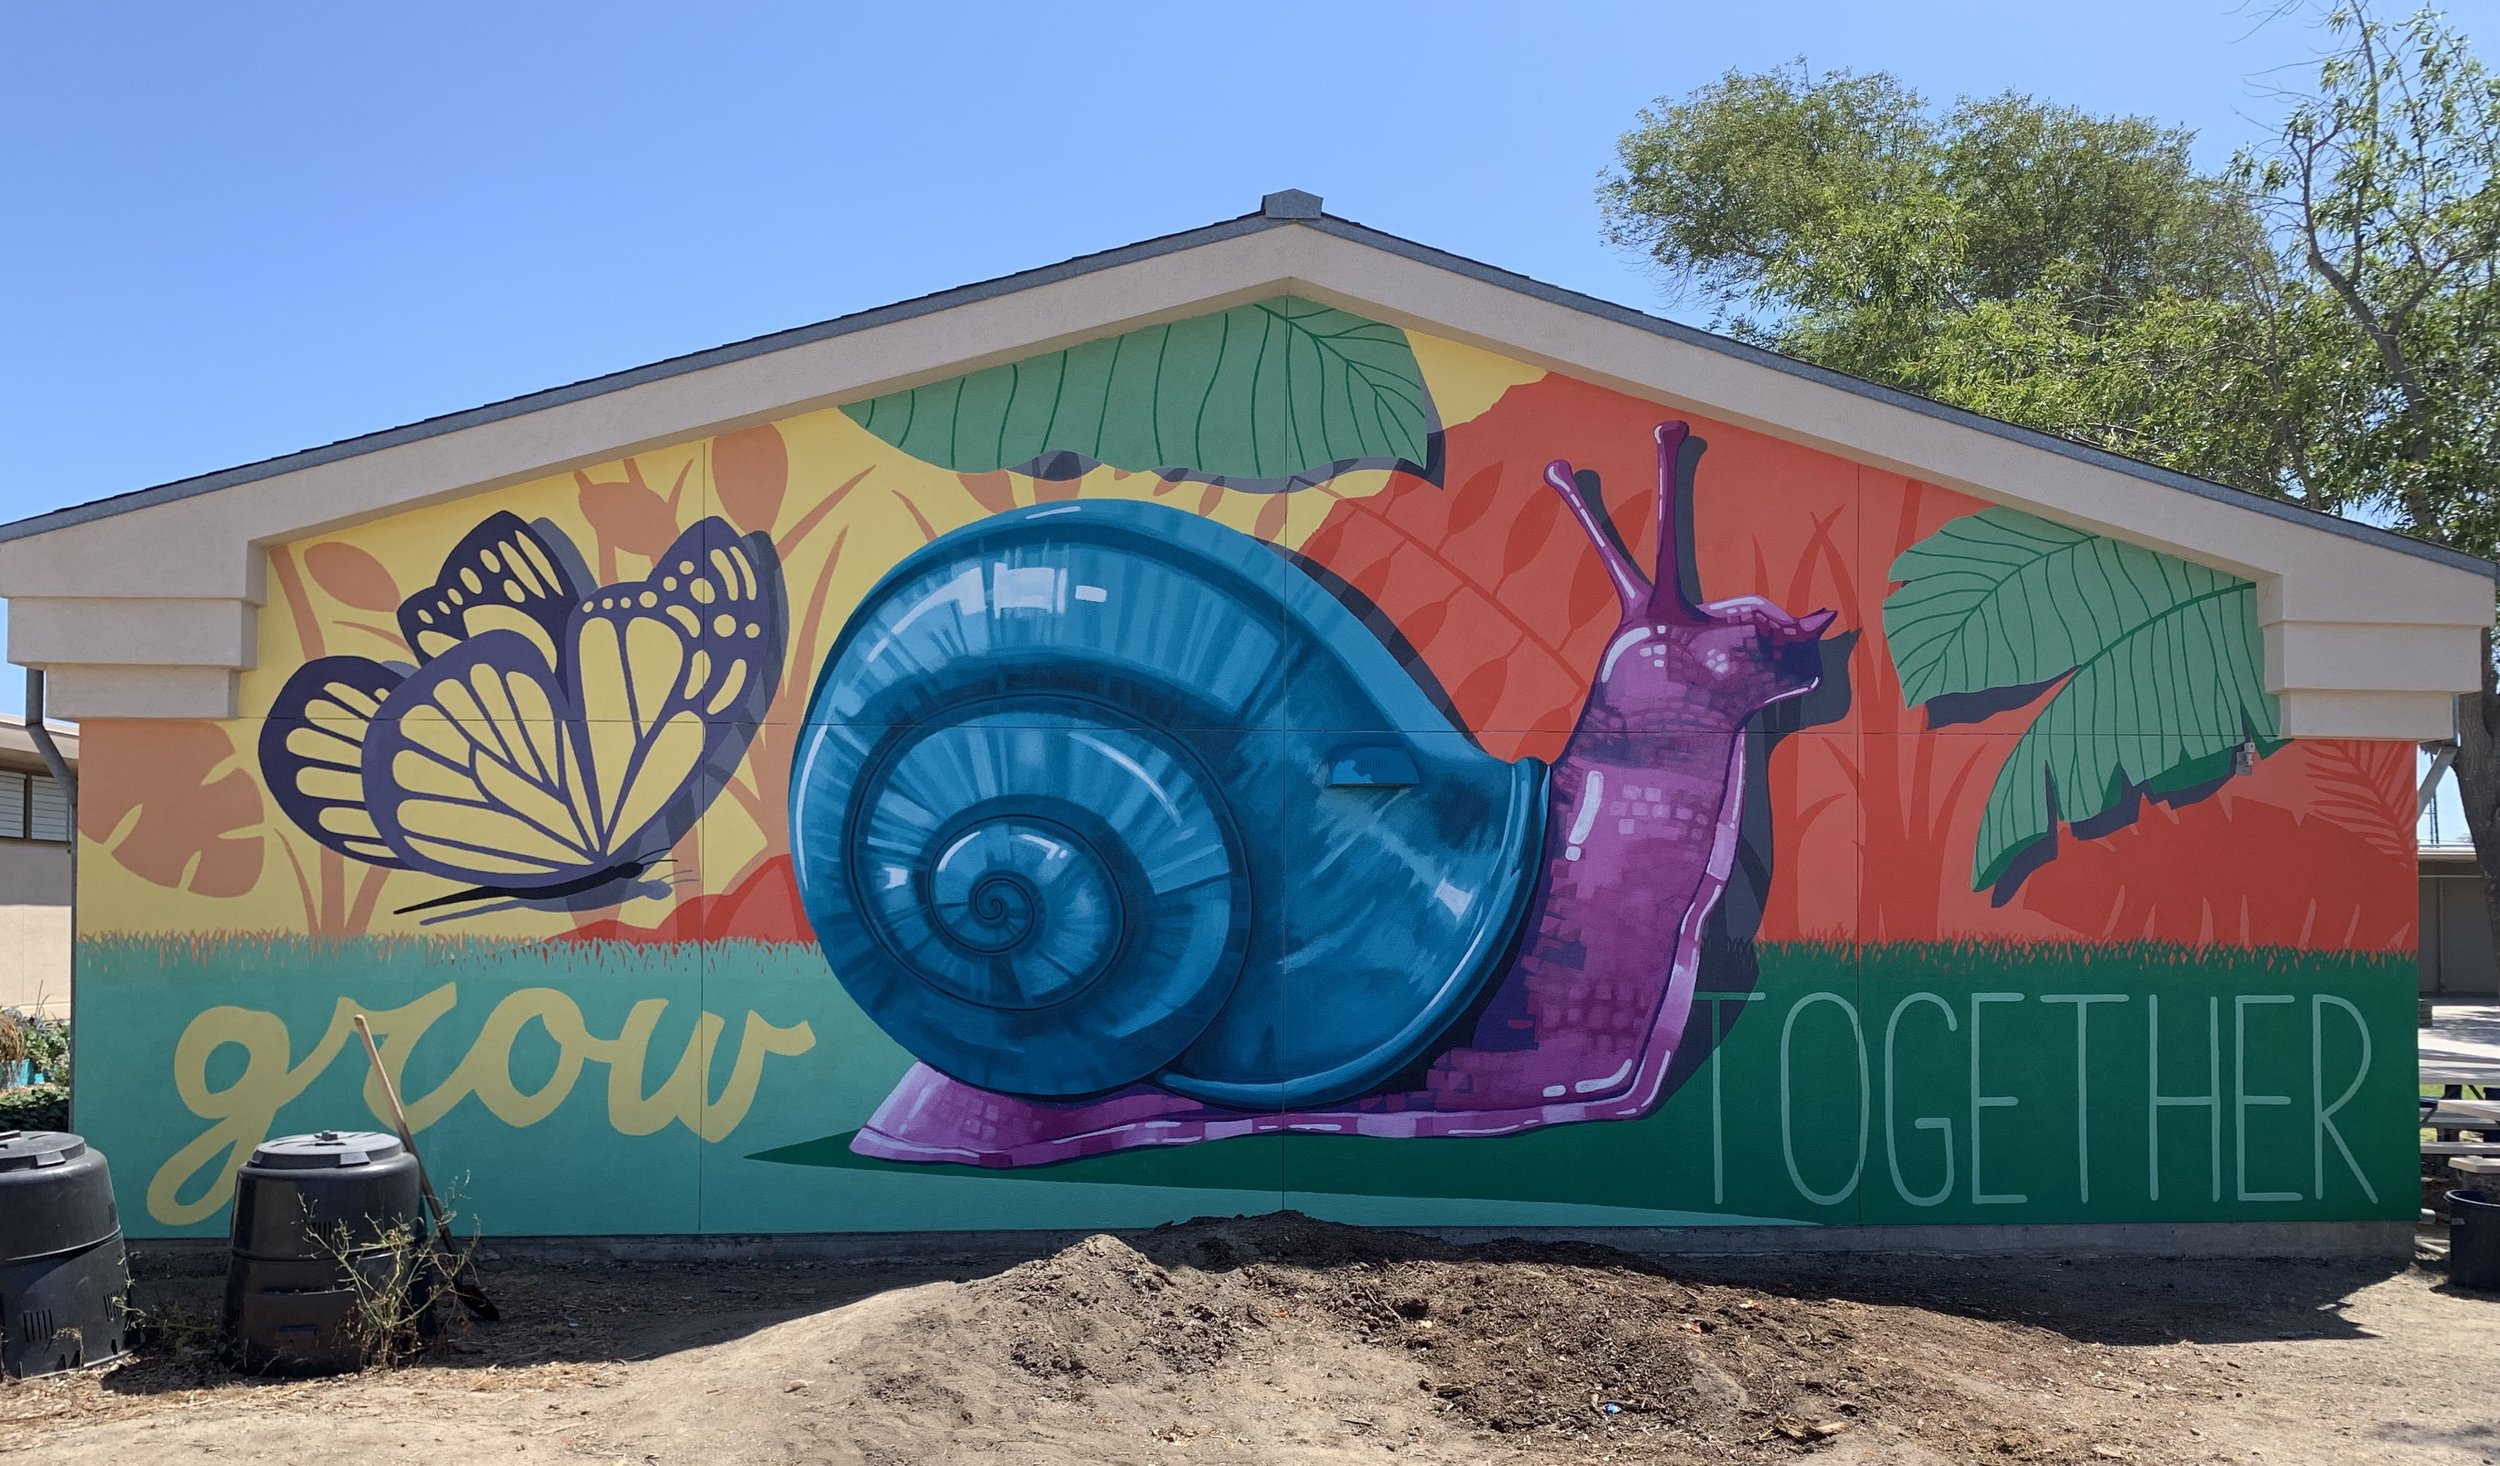 New mural completed for Whitman Elementary School's community garden. San Diego, CA